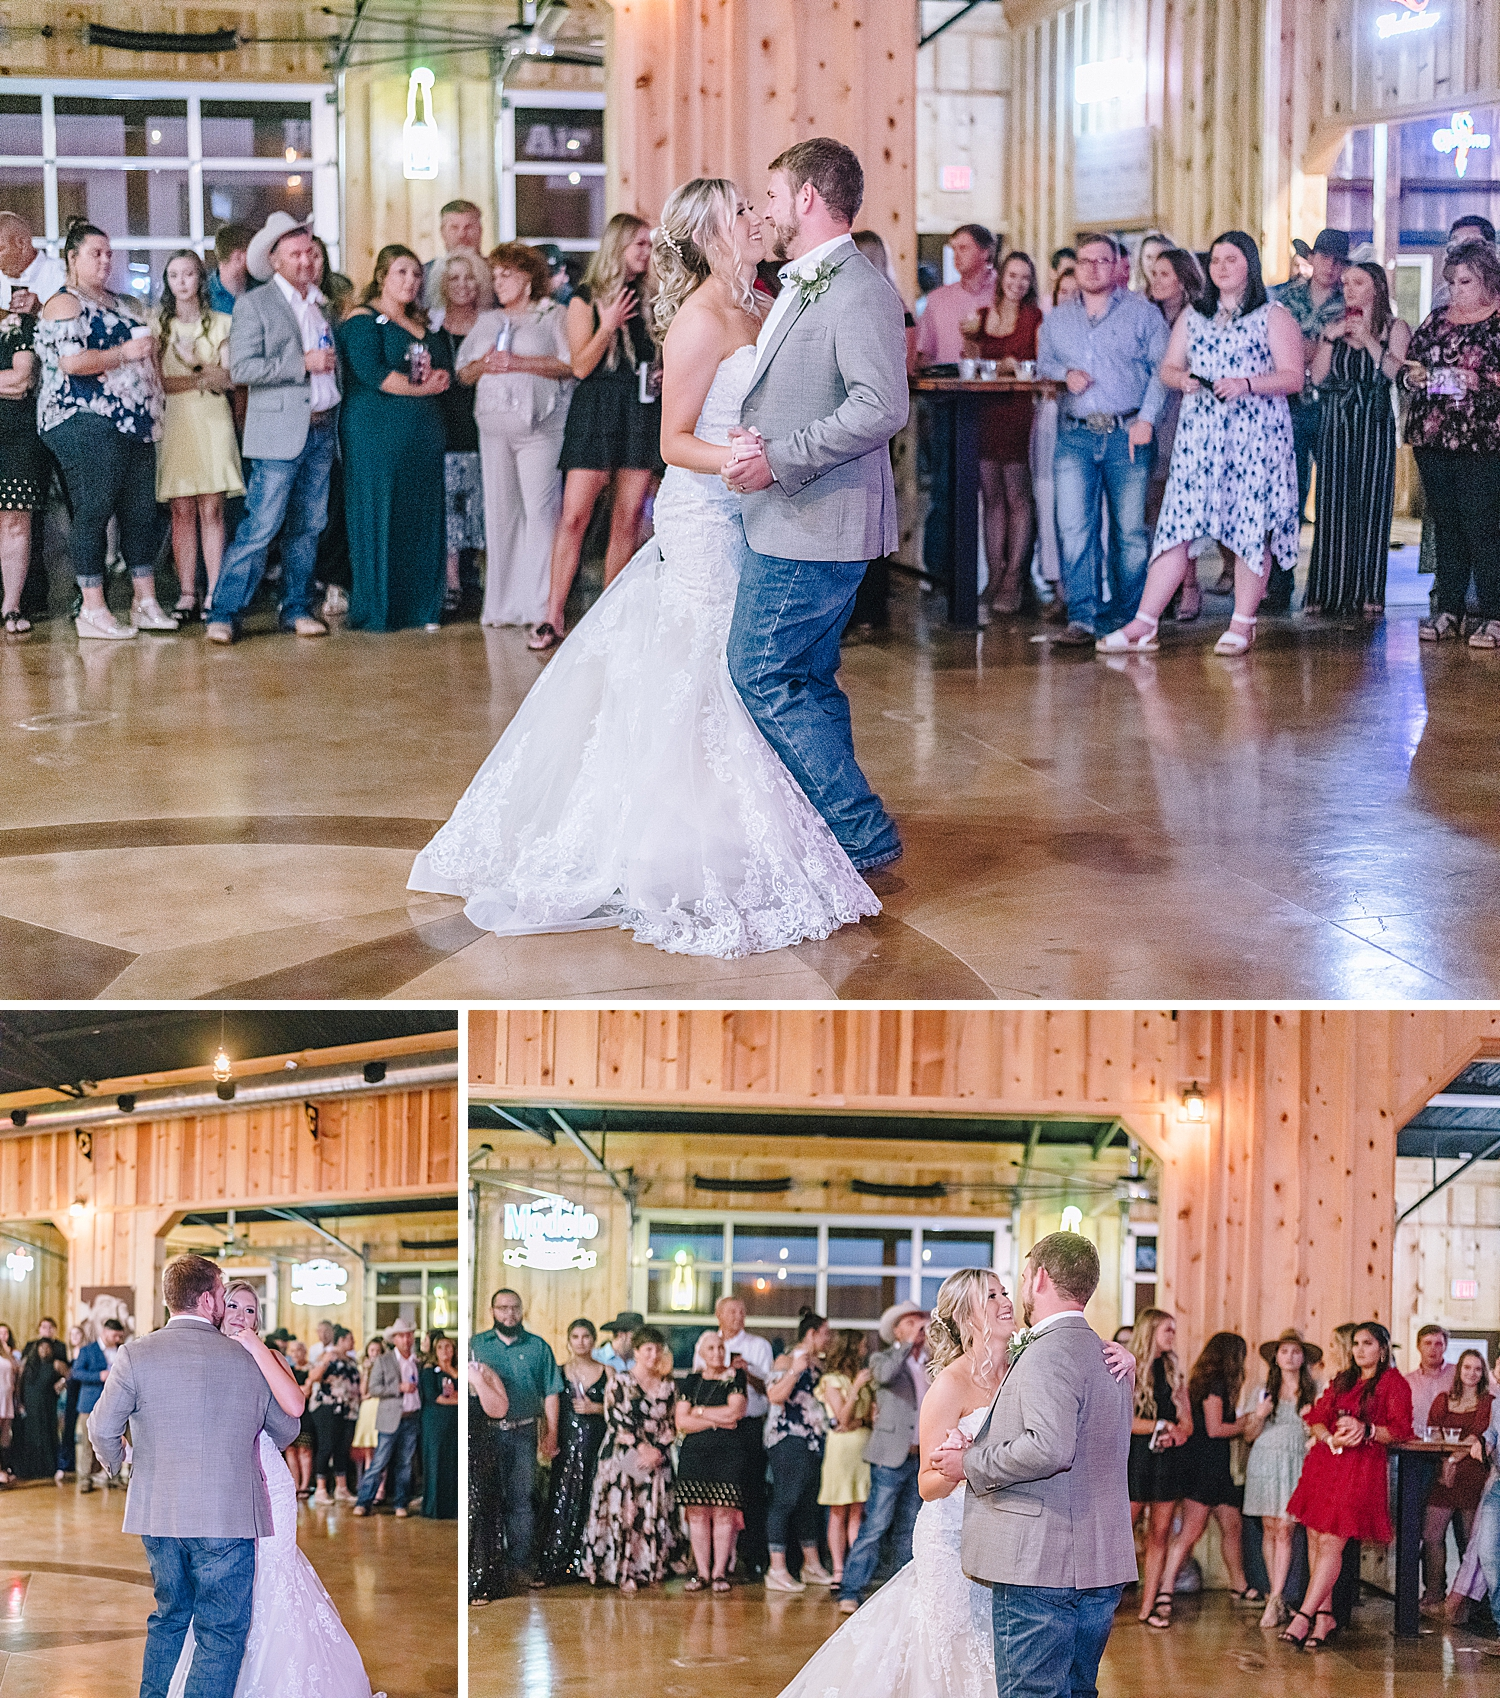 Rackler-Ranch-LaVernia-Texas-Wedding-Carly-Barton-Photography_0157.jpg